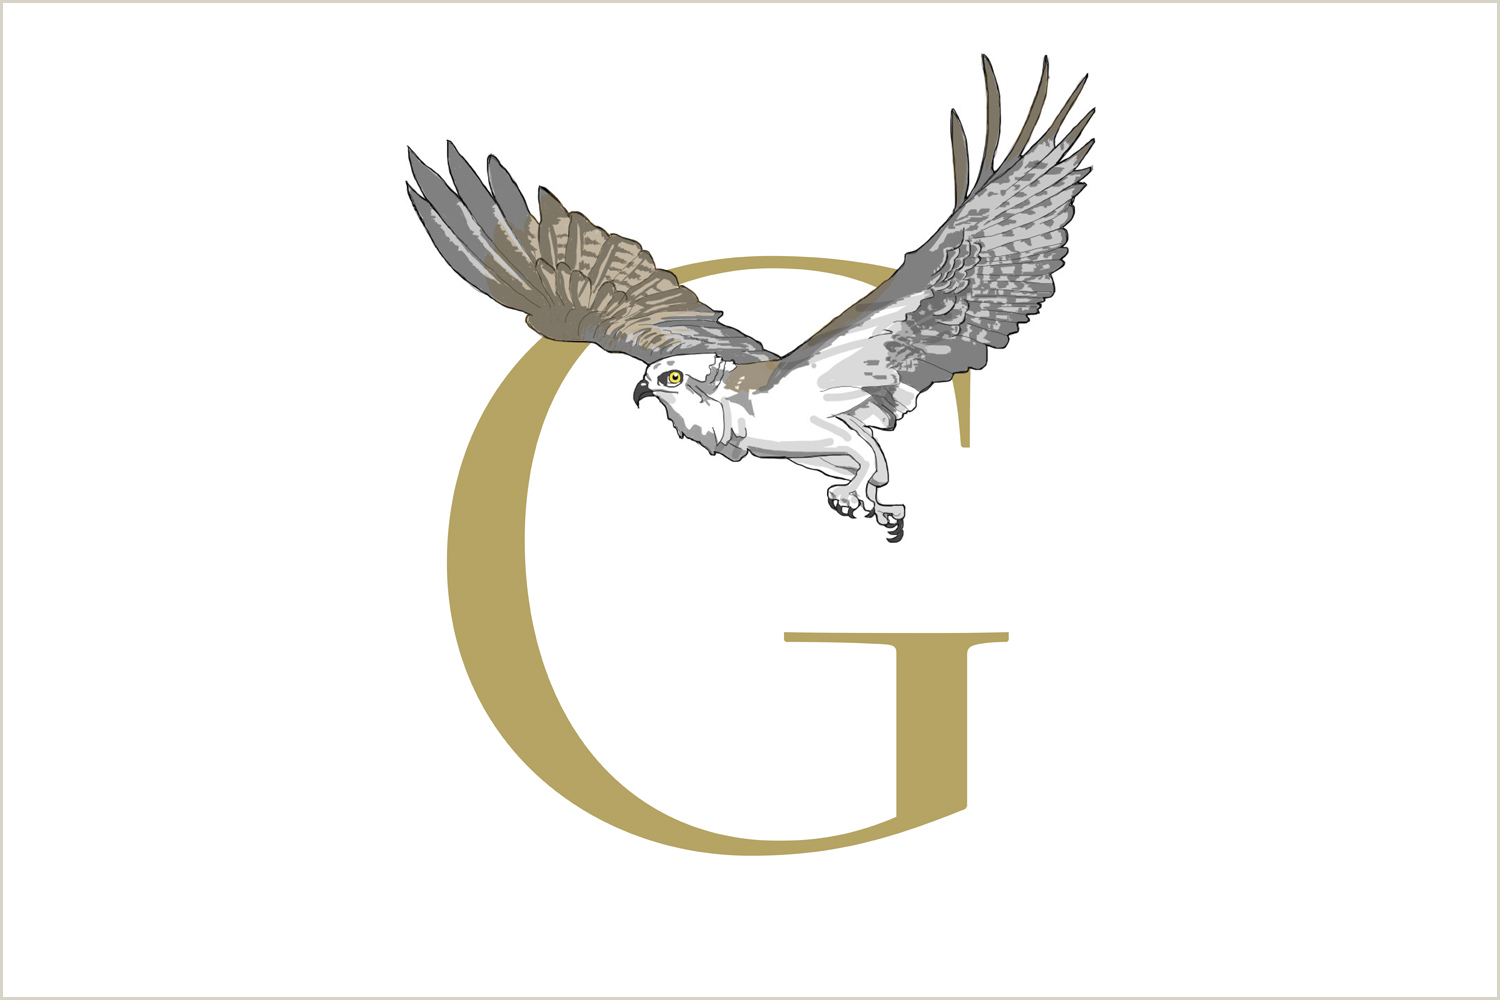 There is also a simple 'G' version of the logo